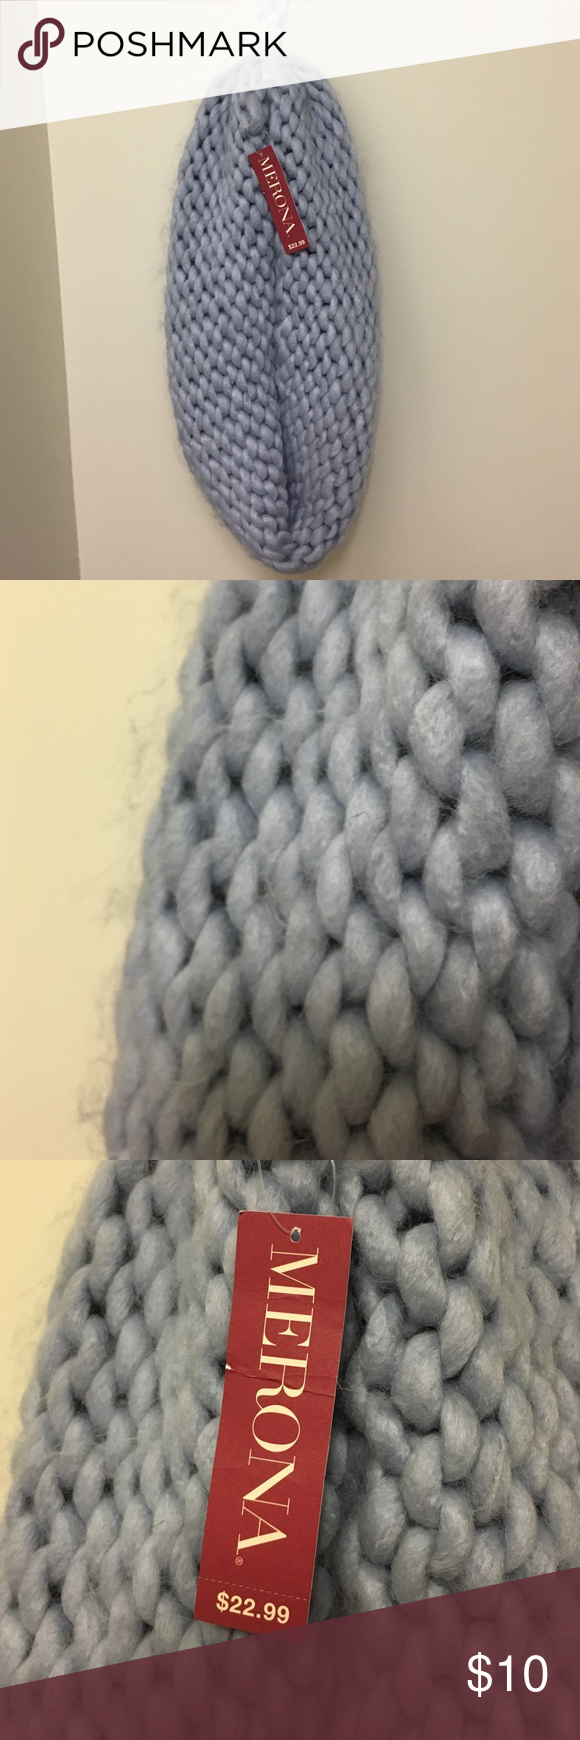 NWT ULTRA SOFT blue infinity scarf This is the softest scarf I've ever felt! Buyer beware, it does shed due to the softness of the material. Merona Accessories Scarves & Wraps